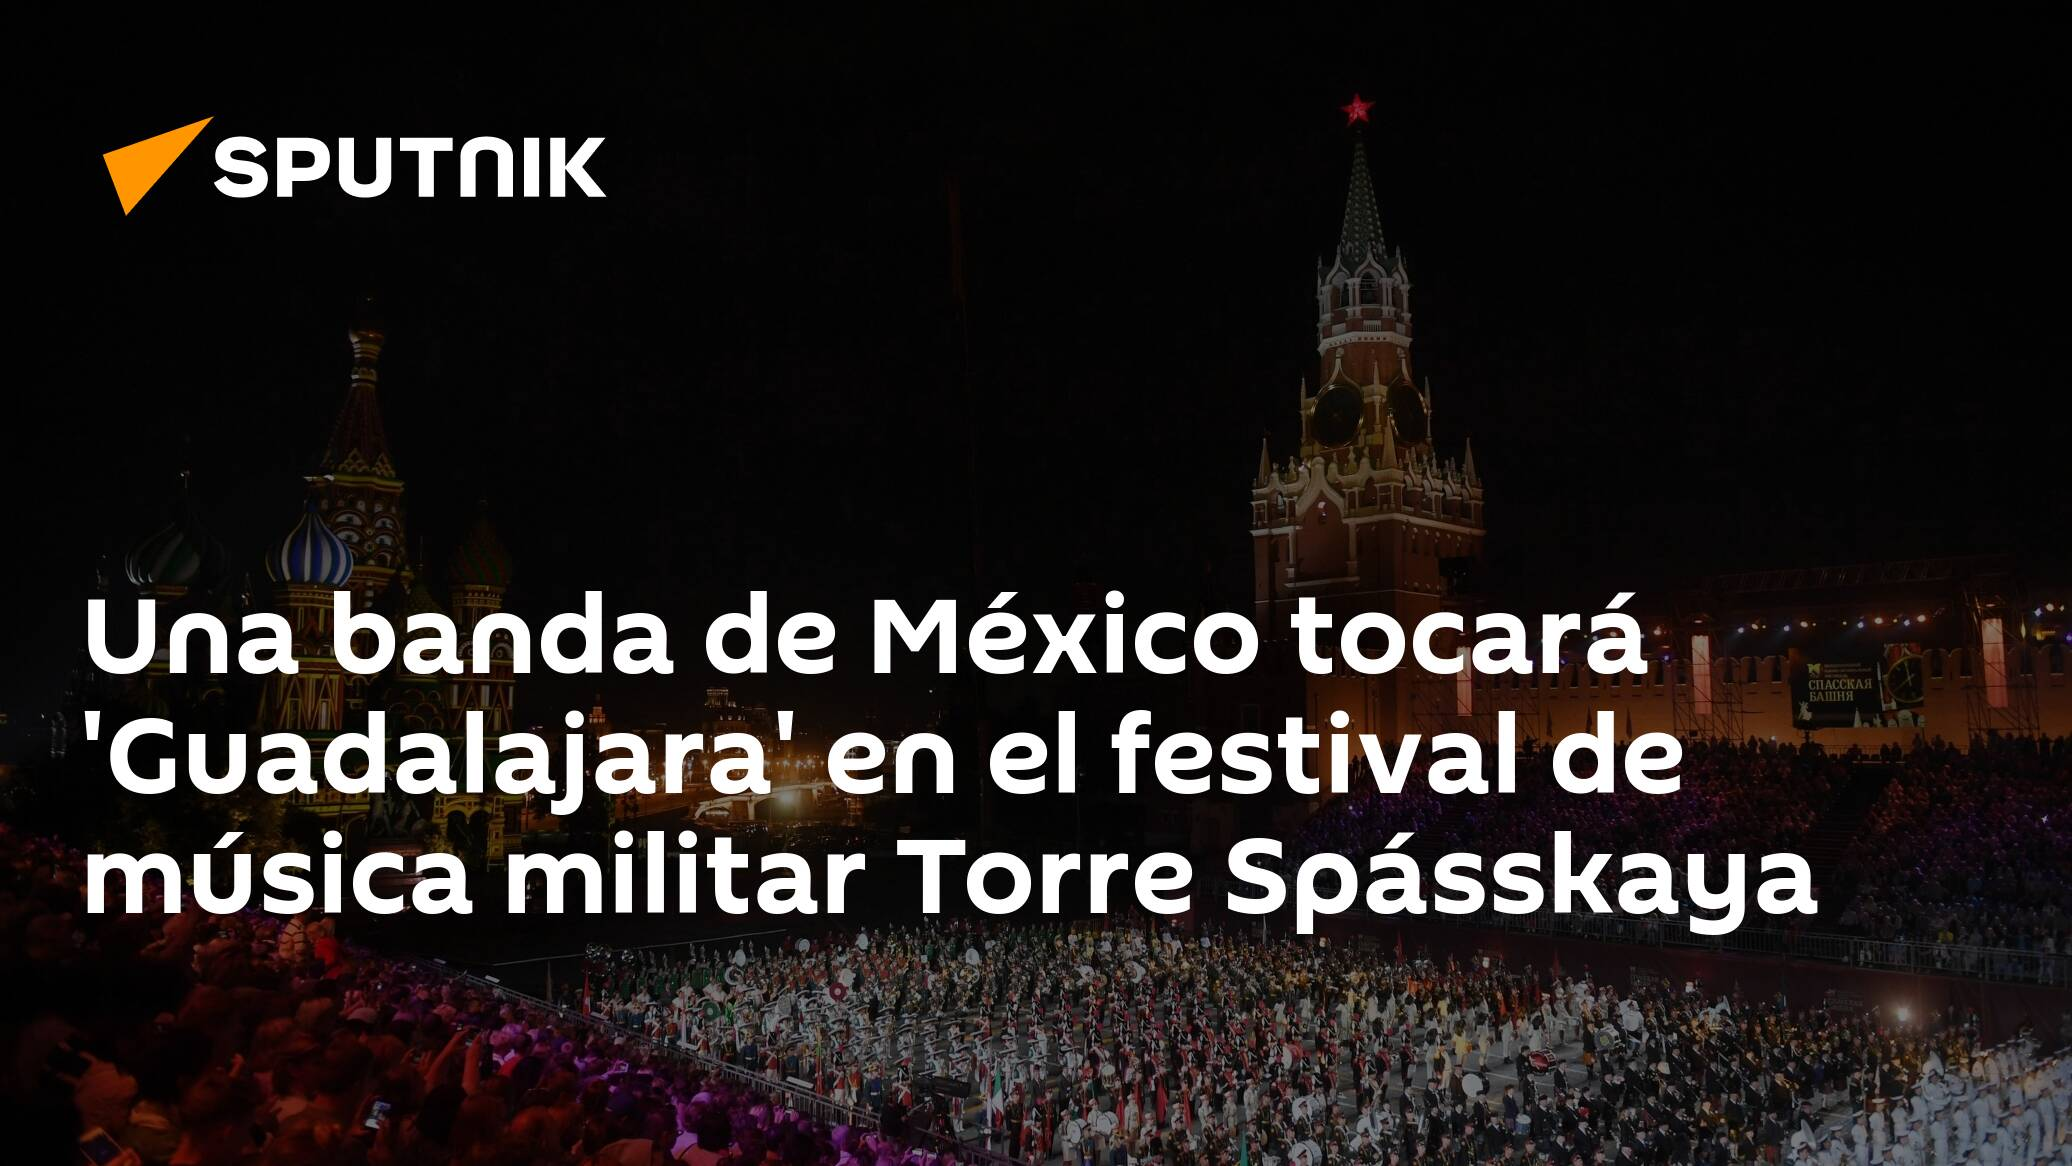 A band from Mexico will play Guadalajara at the Torre